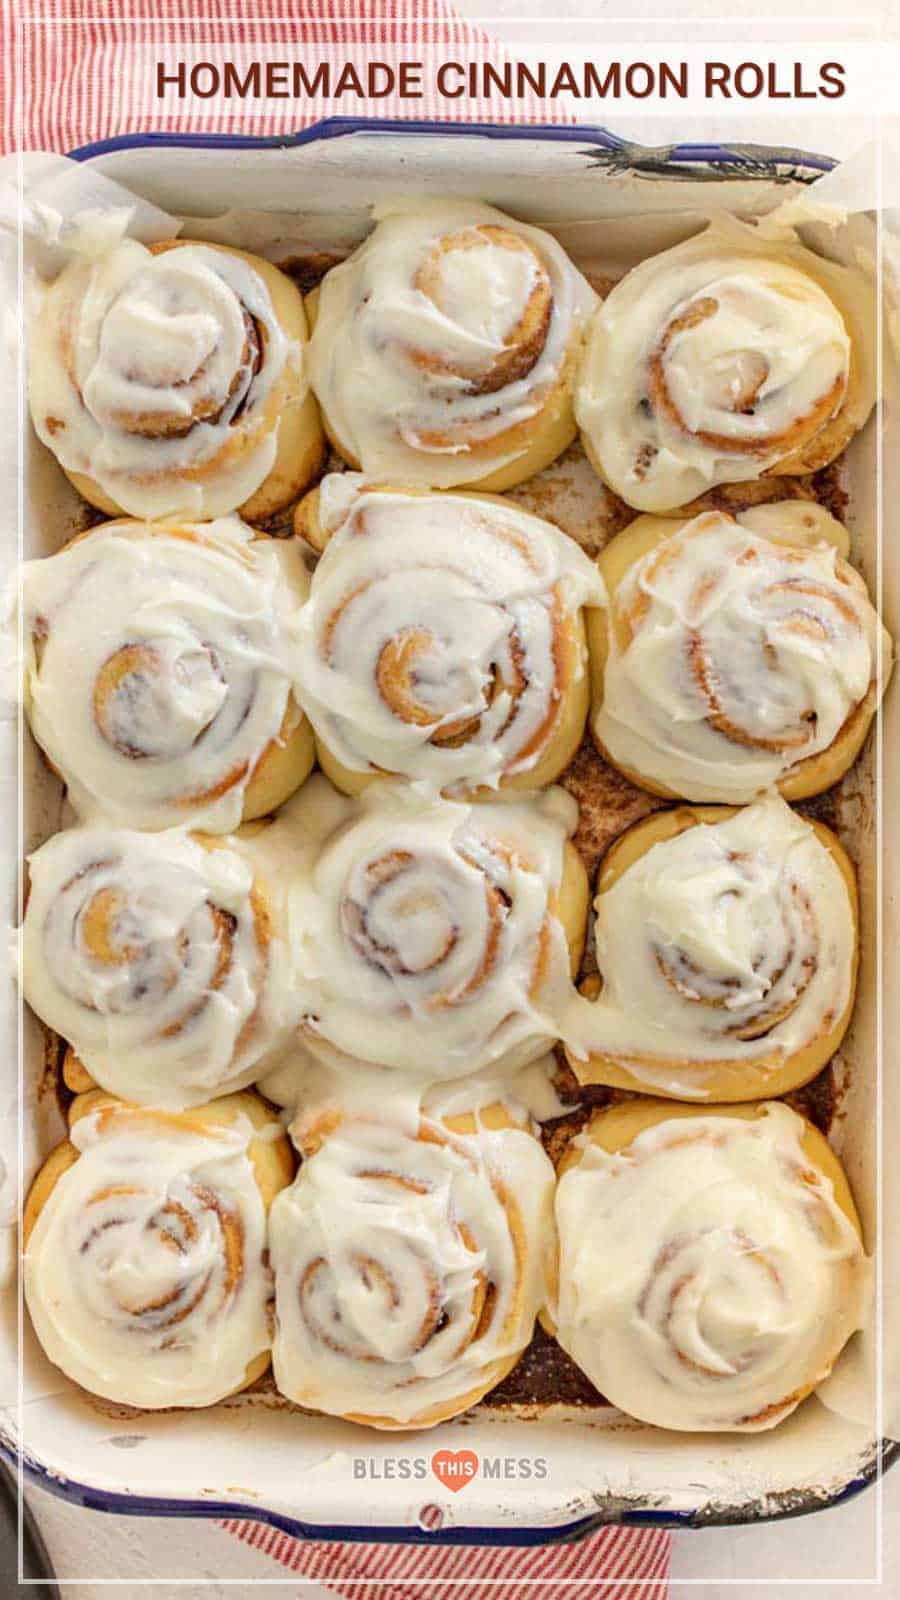 This cinnamon roll recipe creates perfectly fluffy, golden, gooey-on-the-inside rolls with a delicious frosting that you may be tempted to eat by itself! And I promise, it's simple. You can make it on a lounge-y, cool morning and it'll warm you and your loved ones up right away! #cinnamonrolls #cinnamonrollrecipe #breakfastrolls #stickyrolls #stickybuns #baking #homemadecinnamonrolls